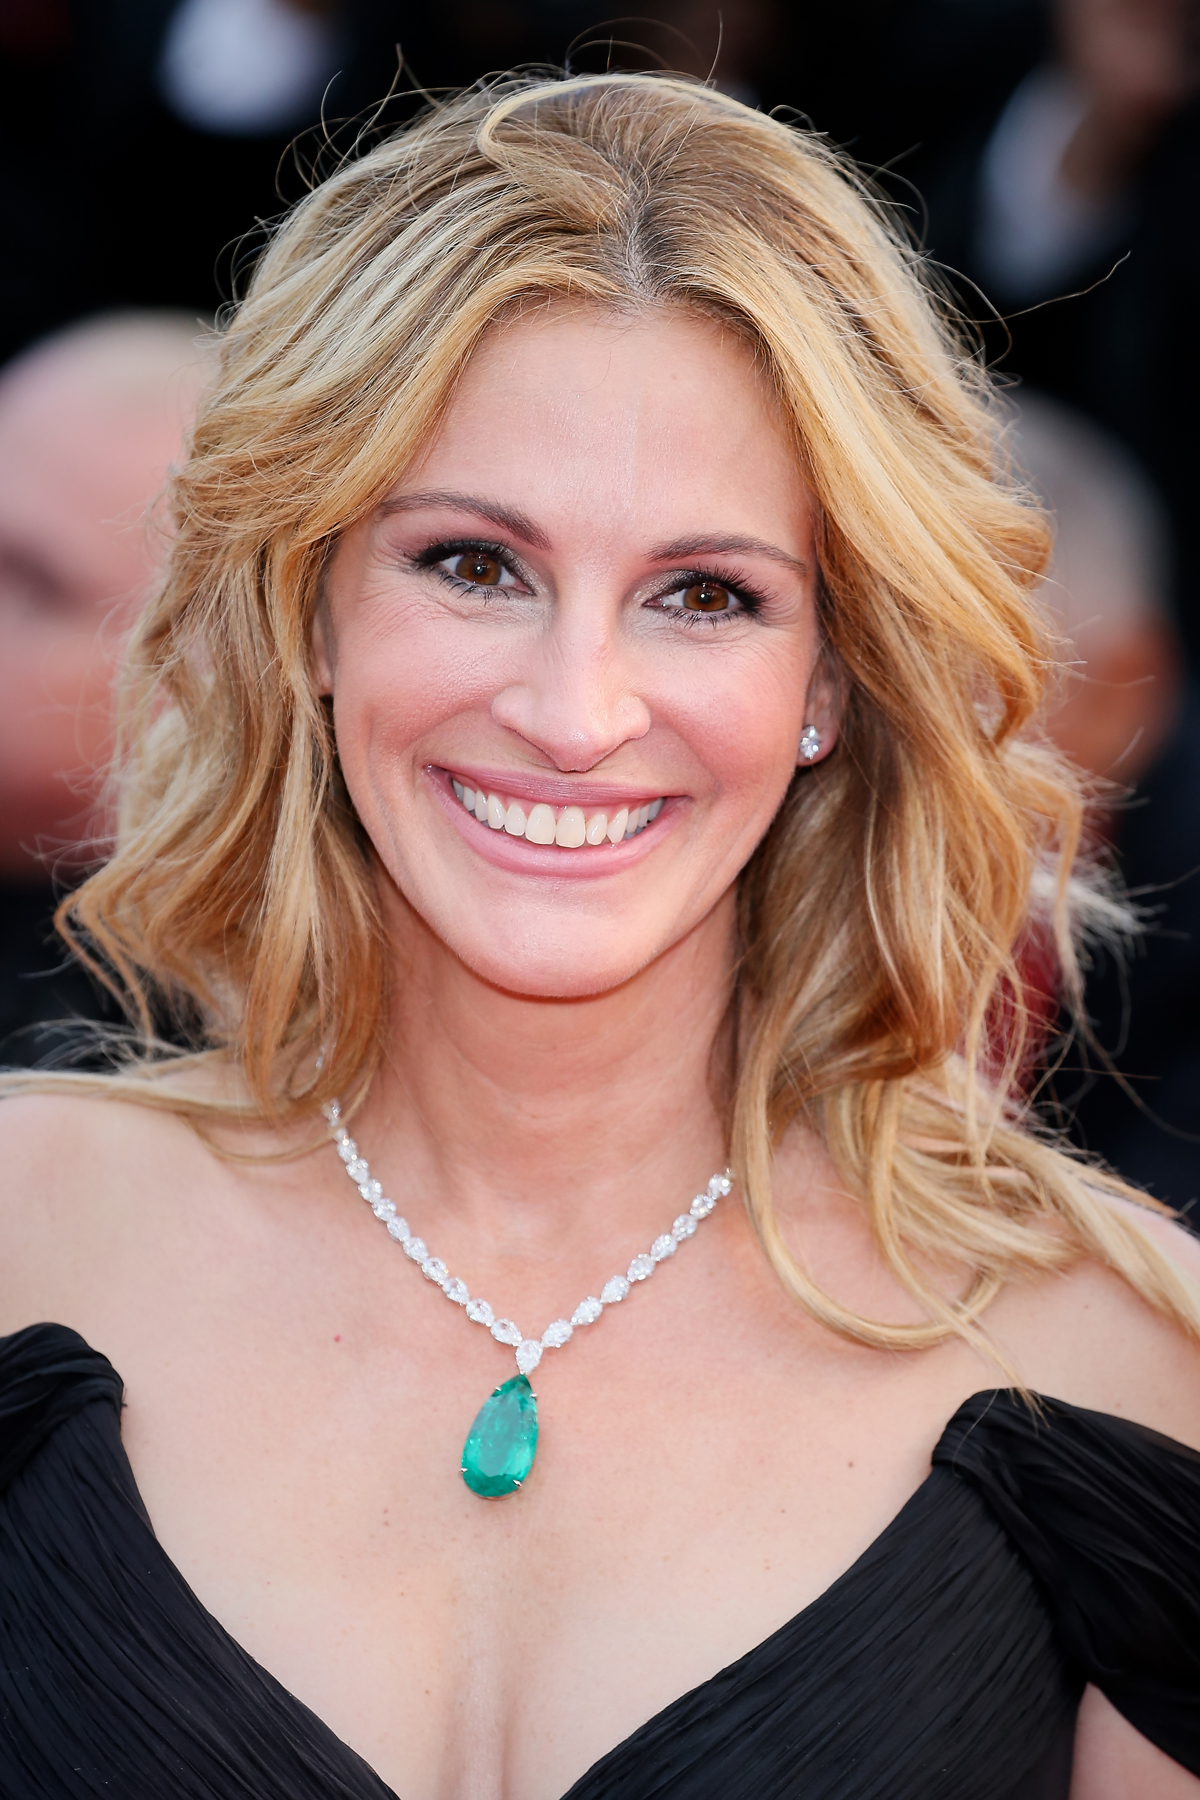 Julia Roberts Just Made the Most Unexpected Hair Change